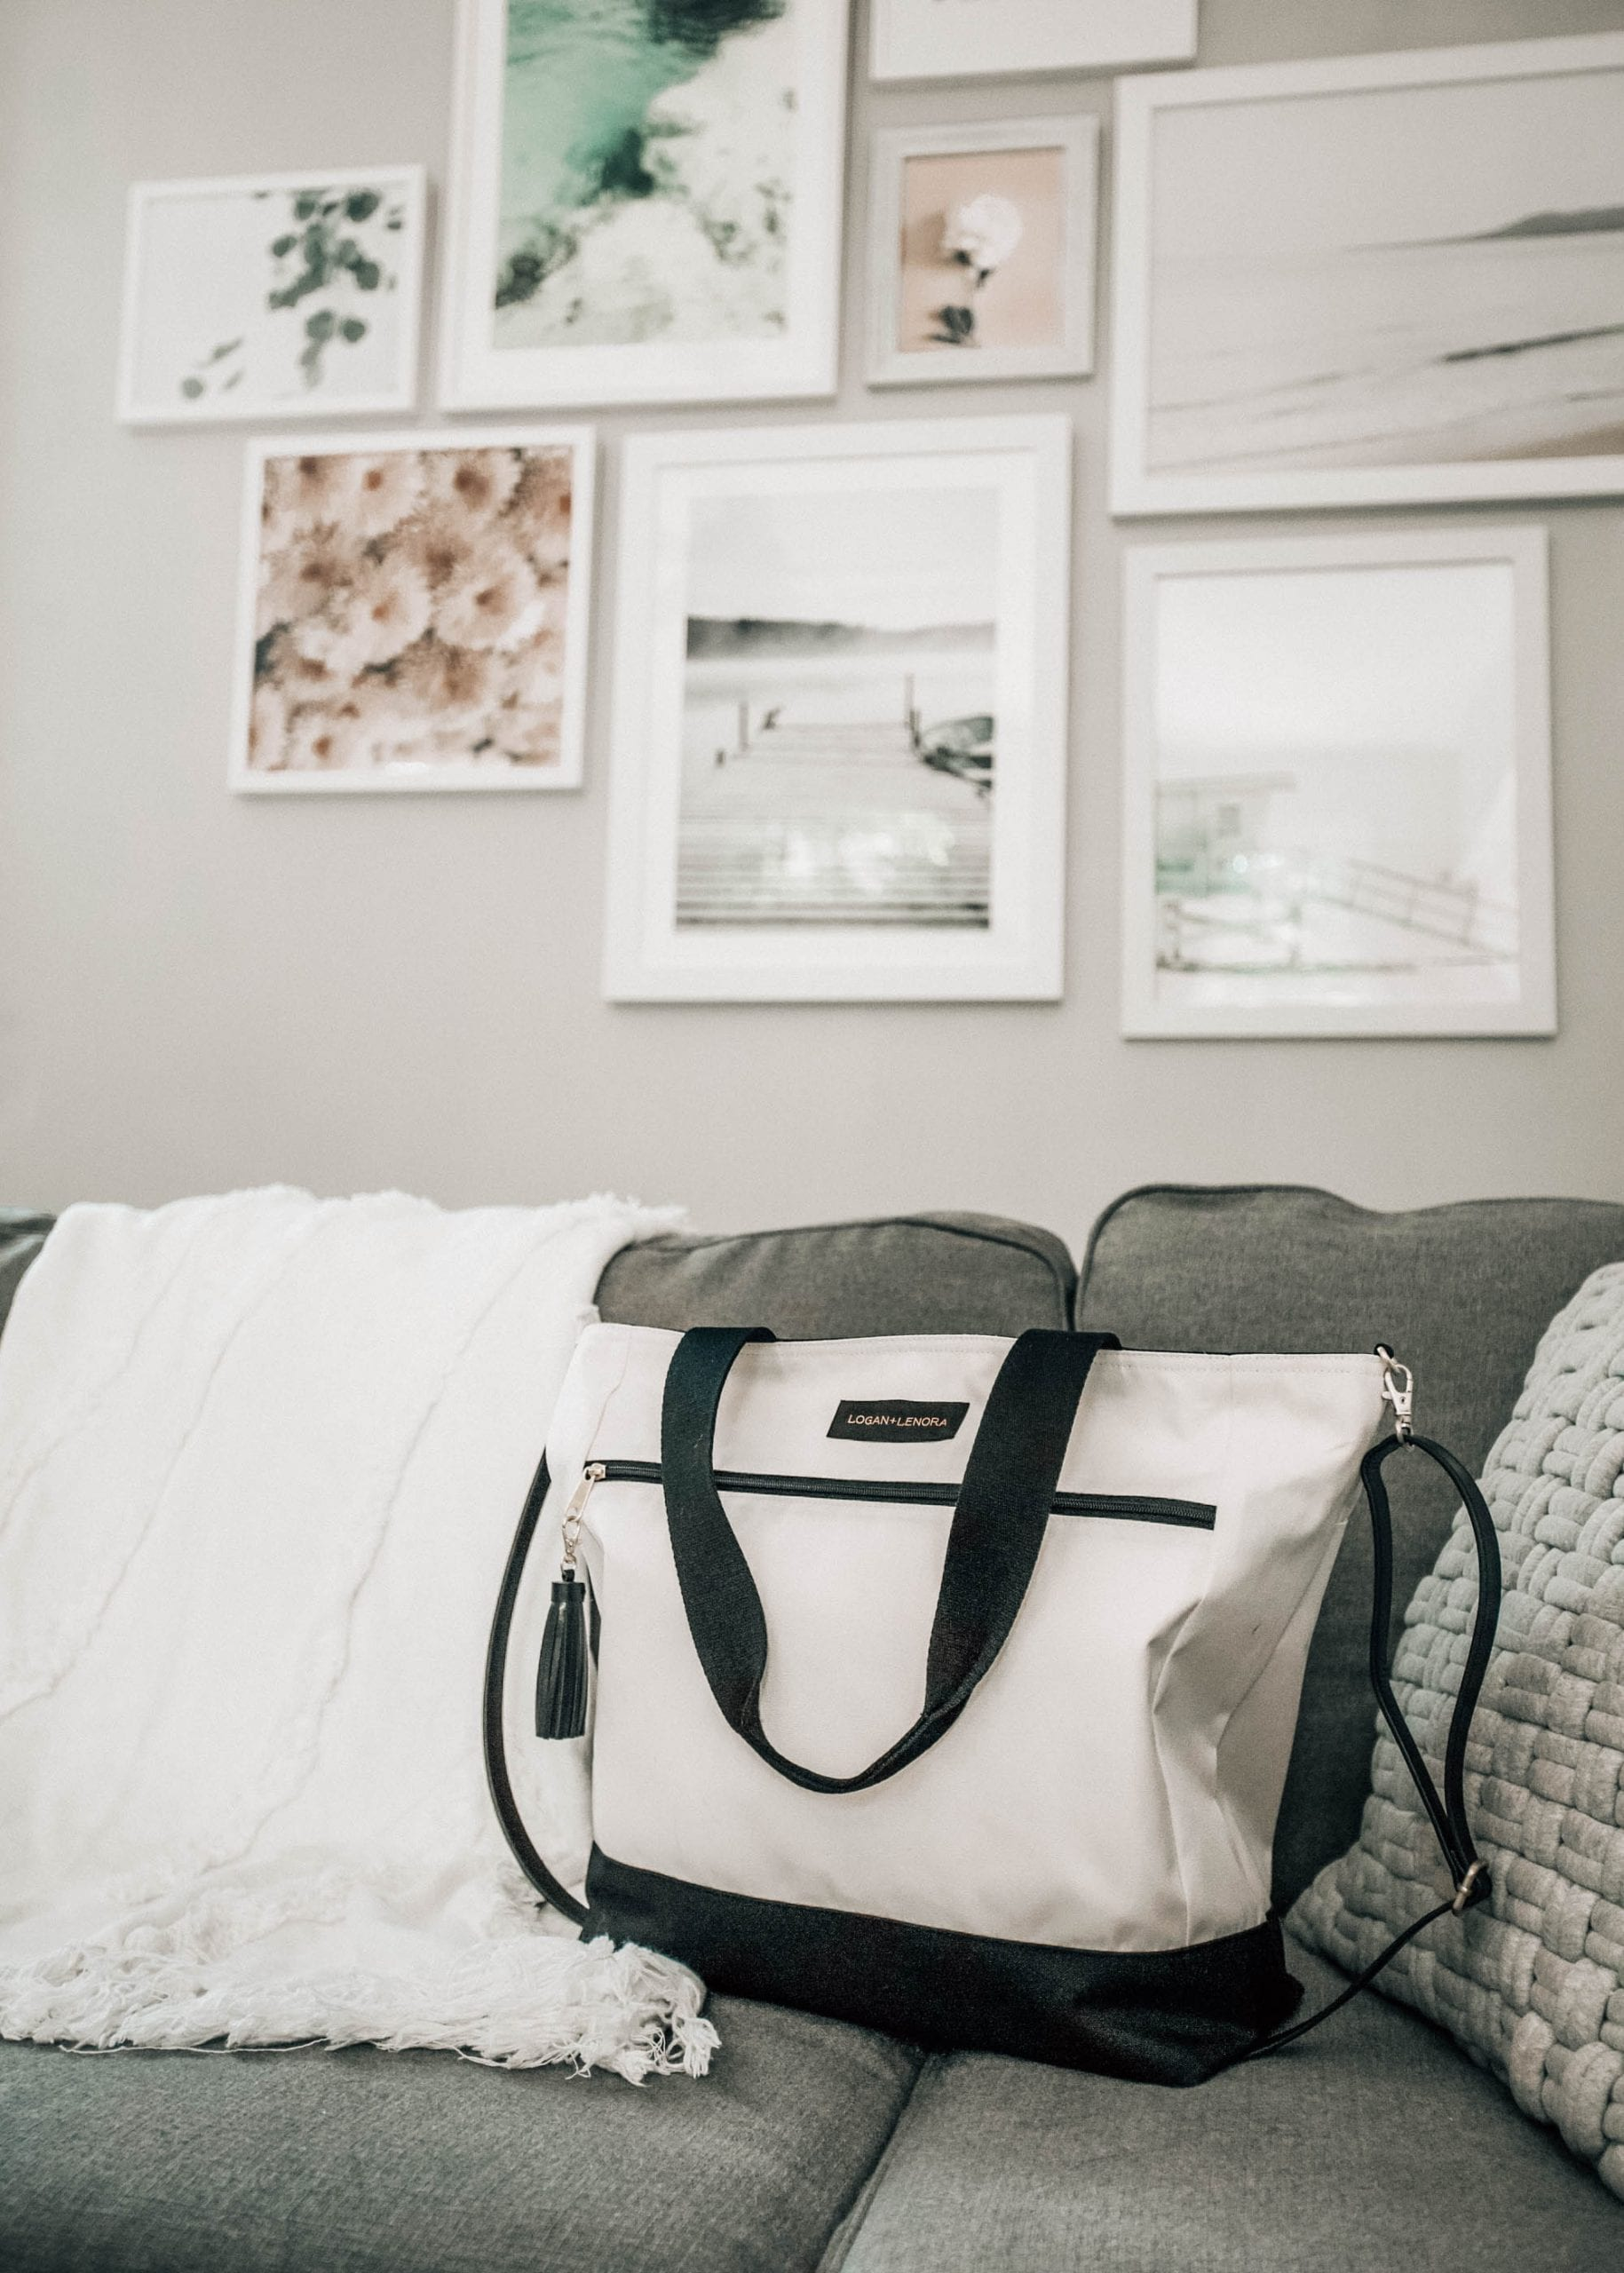 10 Items To Travel More Comfortably